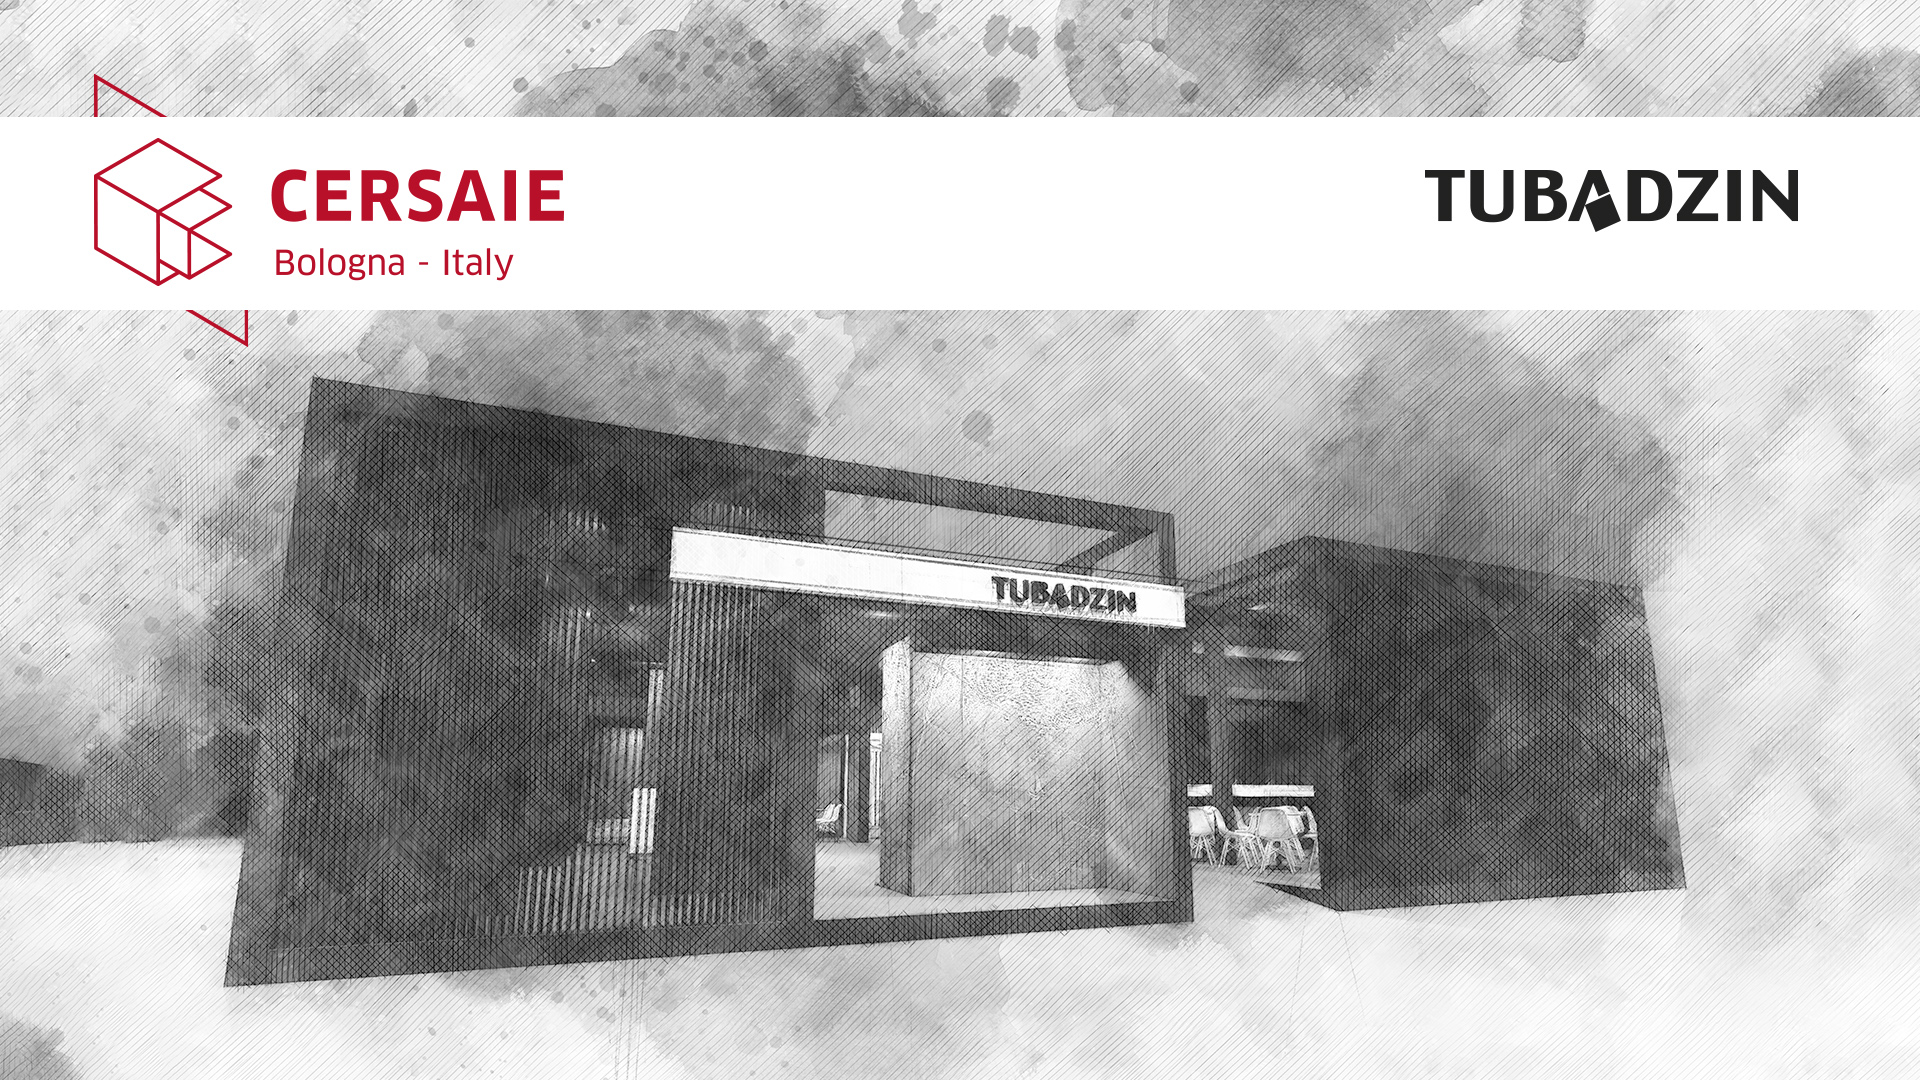 WORLD PREMIERE OF NEW TUBADZIN COLLECTIONS AT CERSAIE EXHIBITION IN BOLOGNA